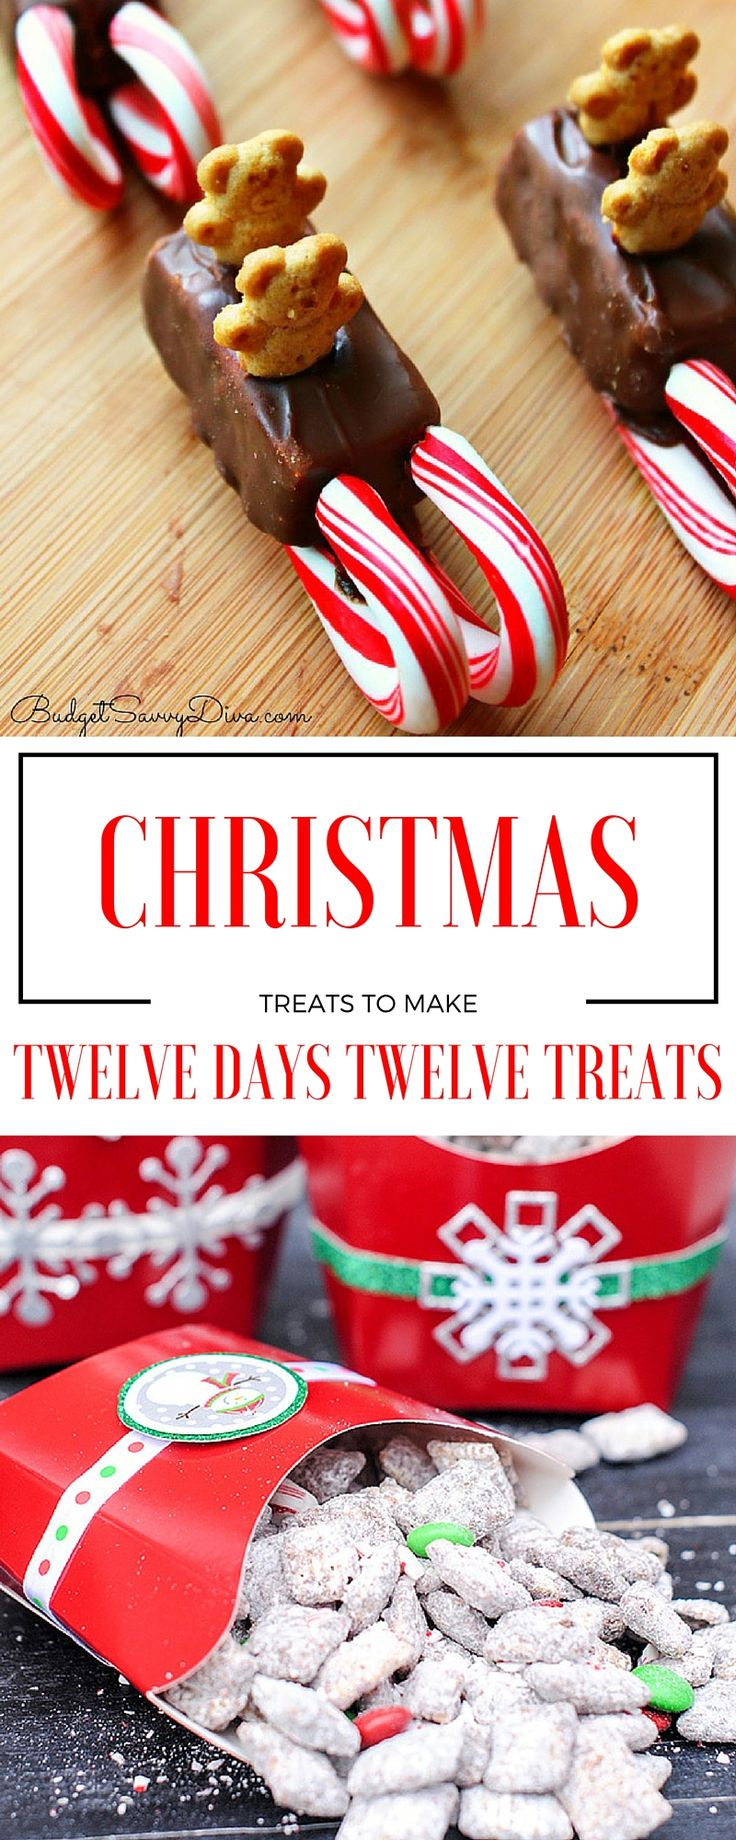 12 of the best Christmas Treats to Make! Pin NOW! Cook later! #Christmas #recipe